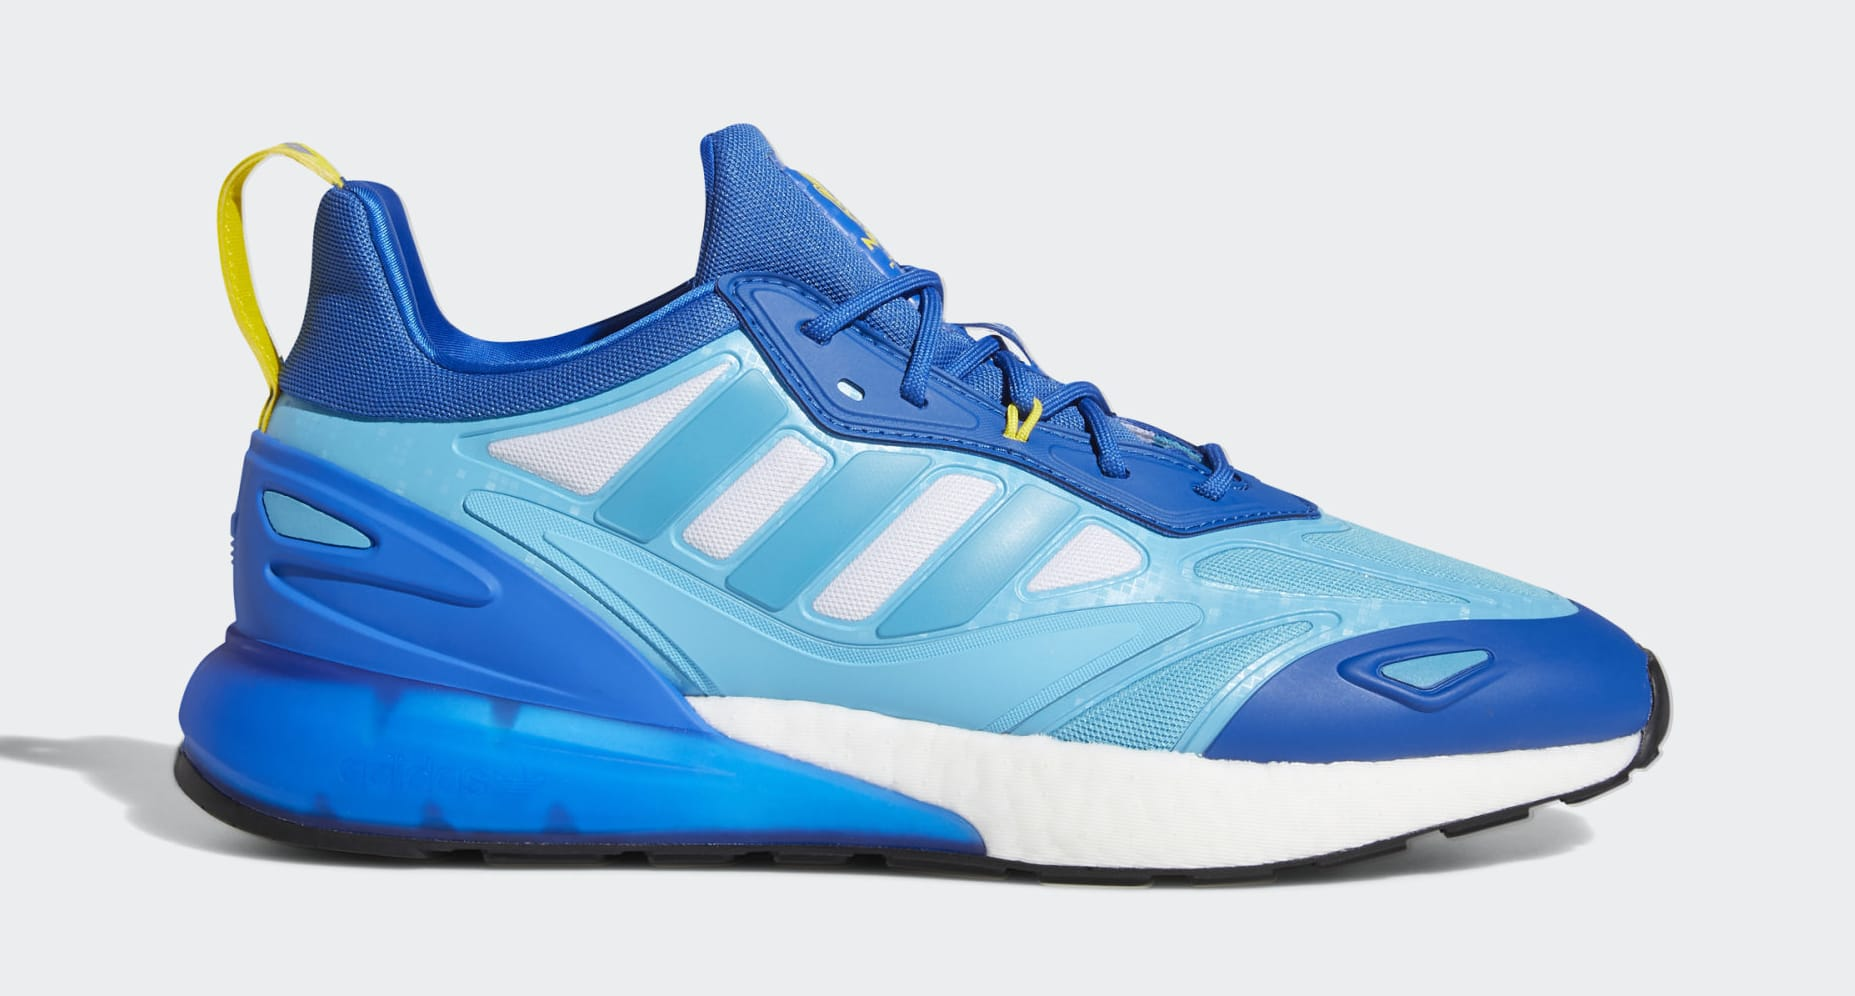 Ninja x Adidas ZX 2K 2.0 'Time In' GZ3743 Lateral